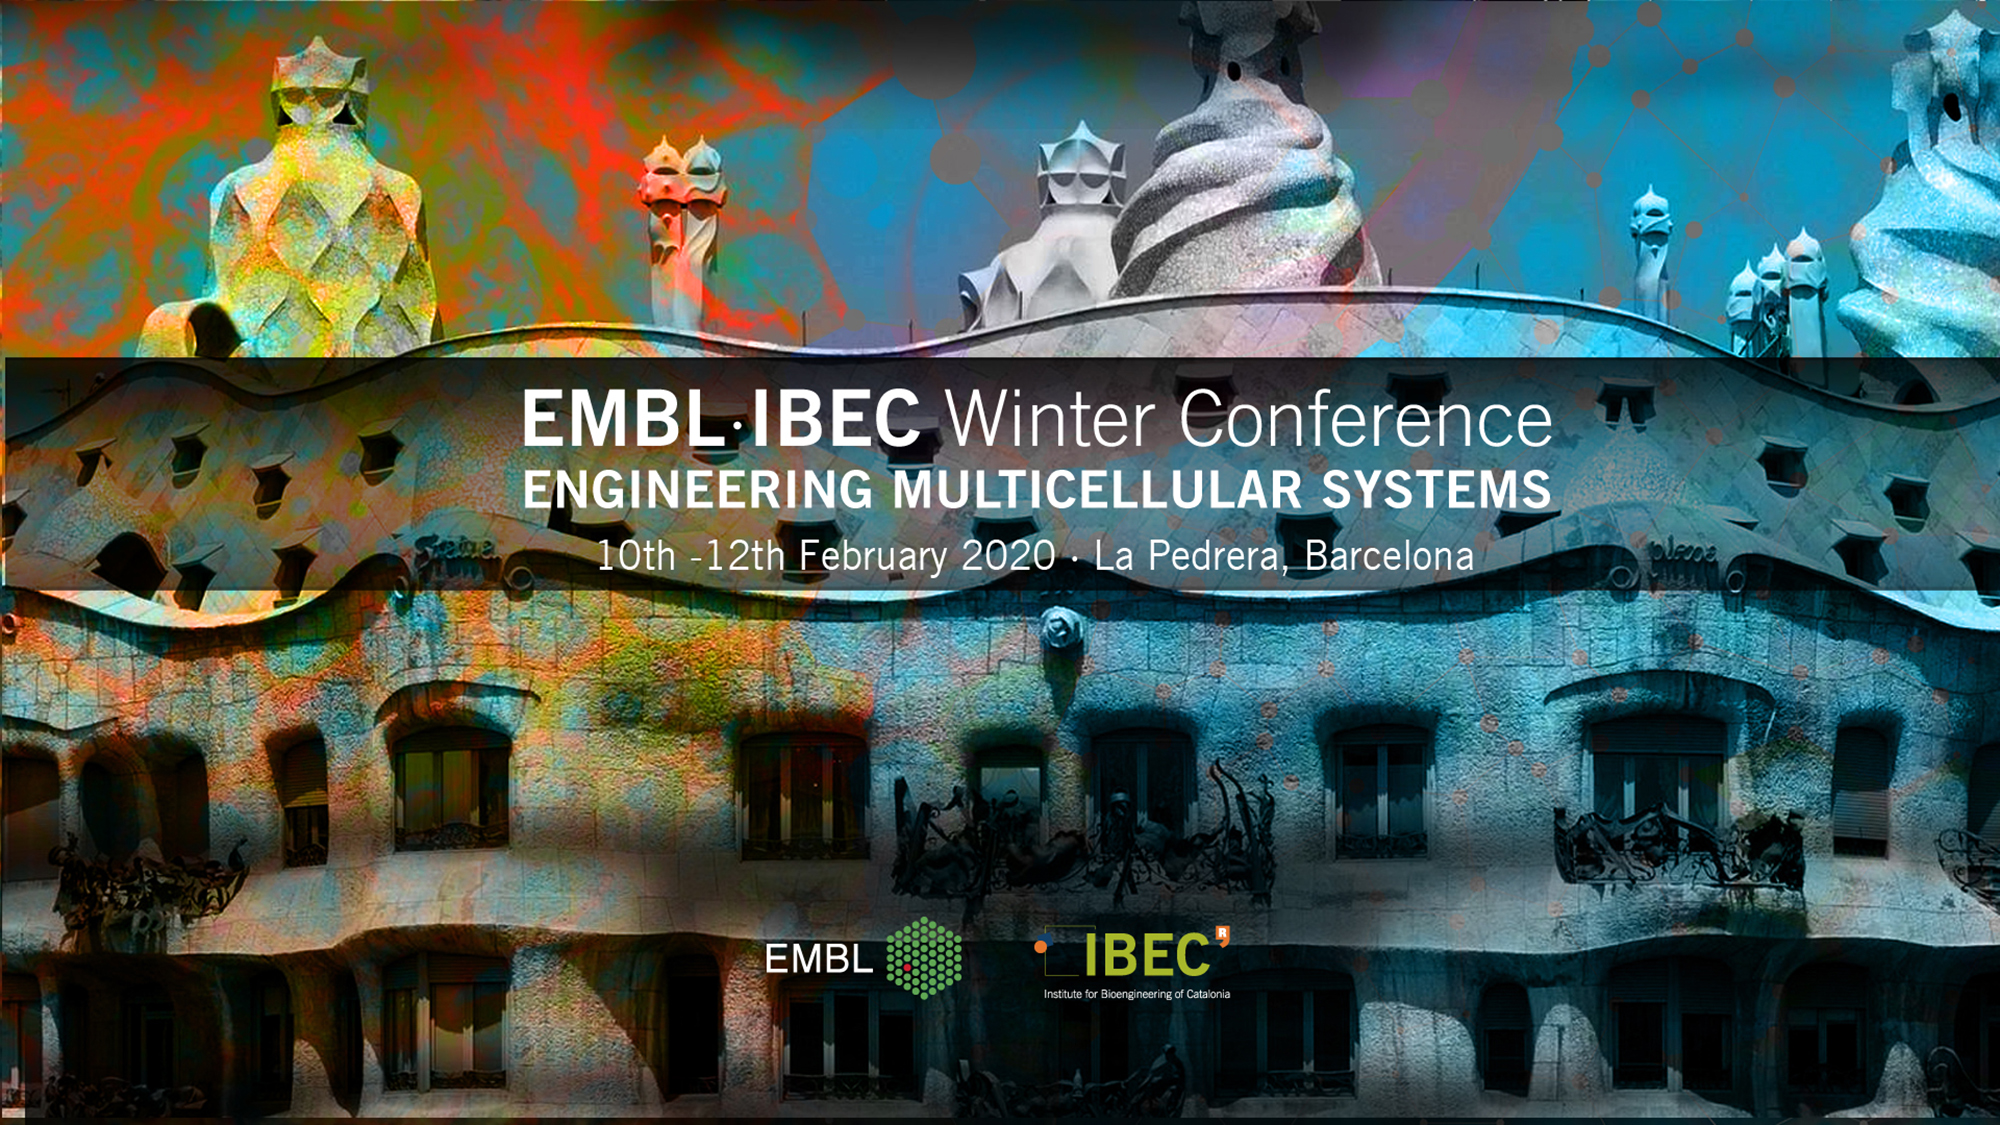 EMBL Barcelona and IBEC found it interesting to use their synergy to start a collaboration and they decided to do it with a symposium that will bring together international experts in multicellular systems.